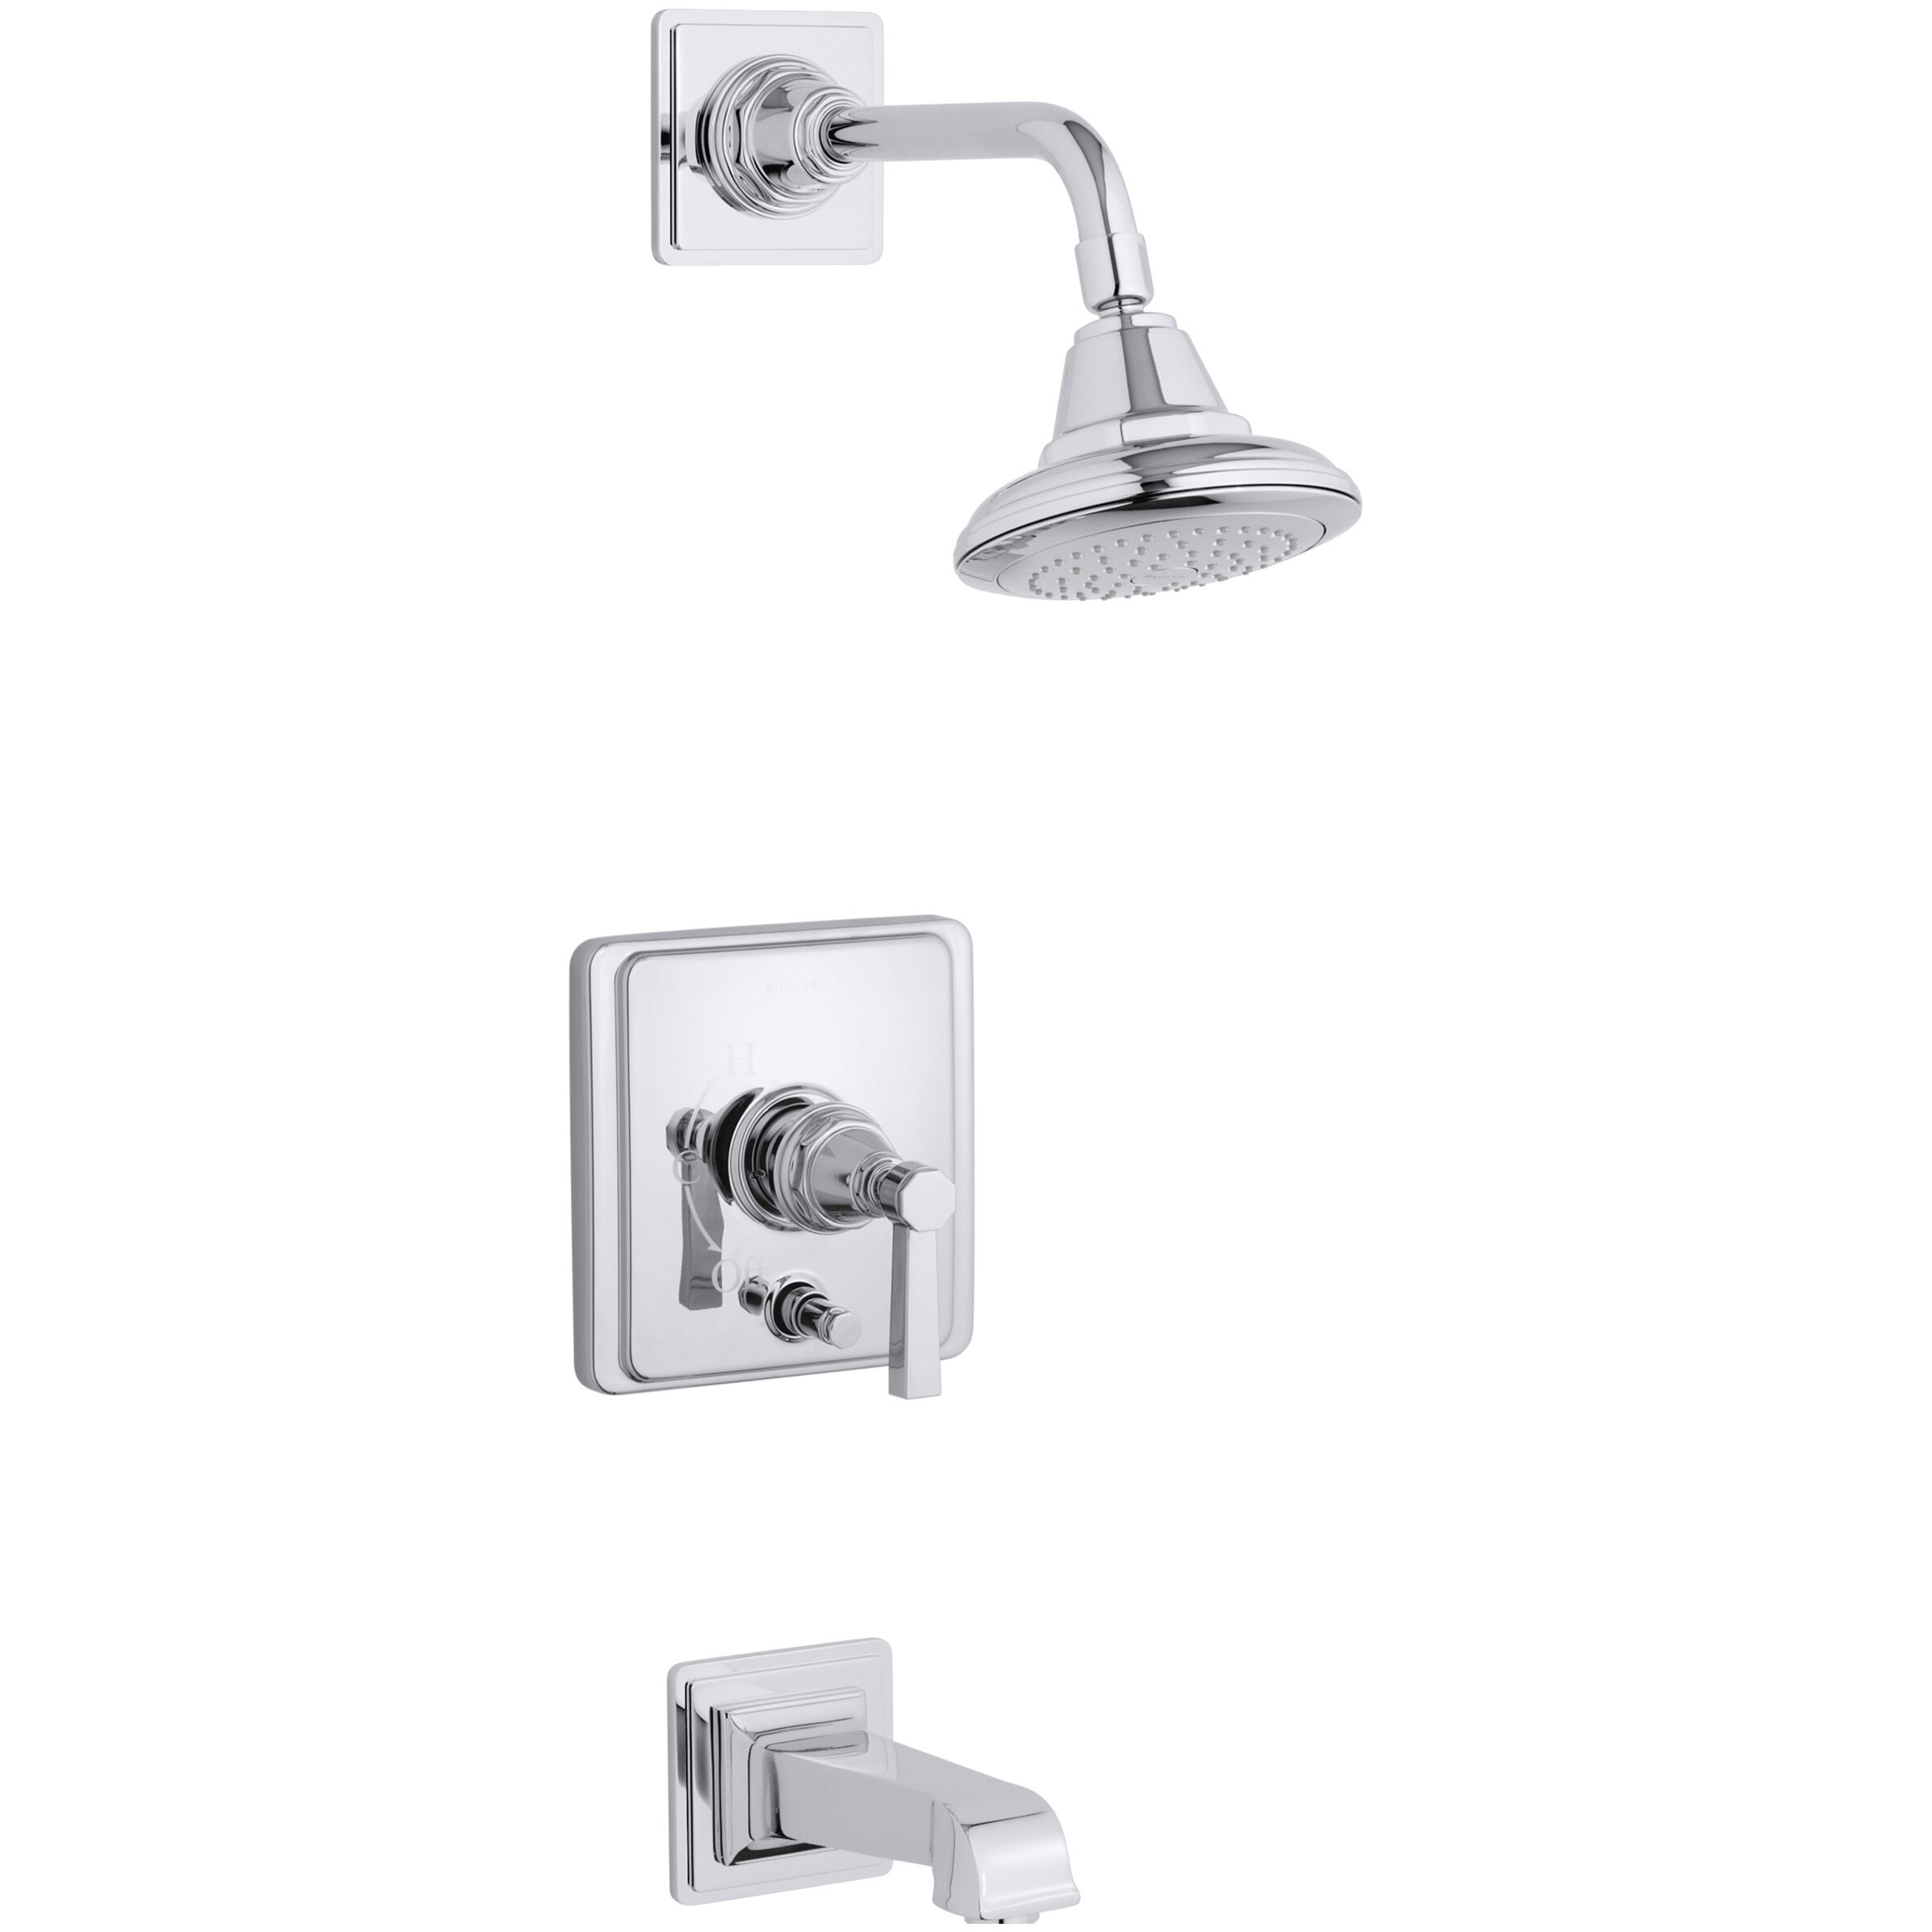 Kohler Pinstripe Pure Rite Temp Pressure Balancing Bath And Shower Faucet Trim With Lever Handle